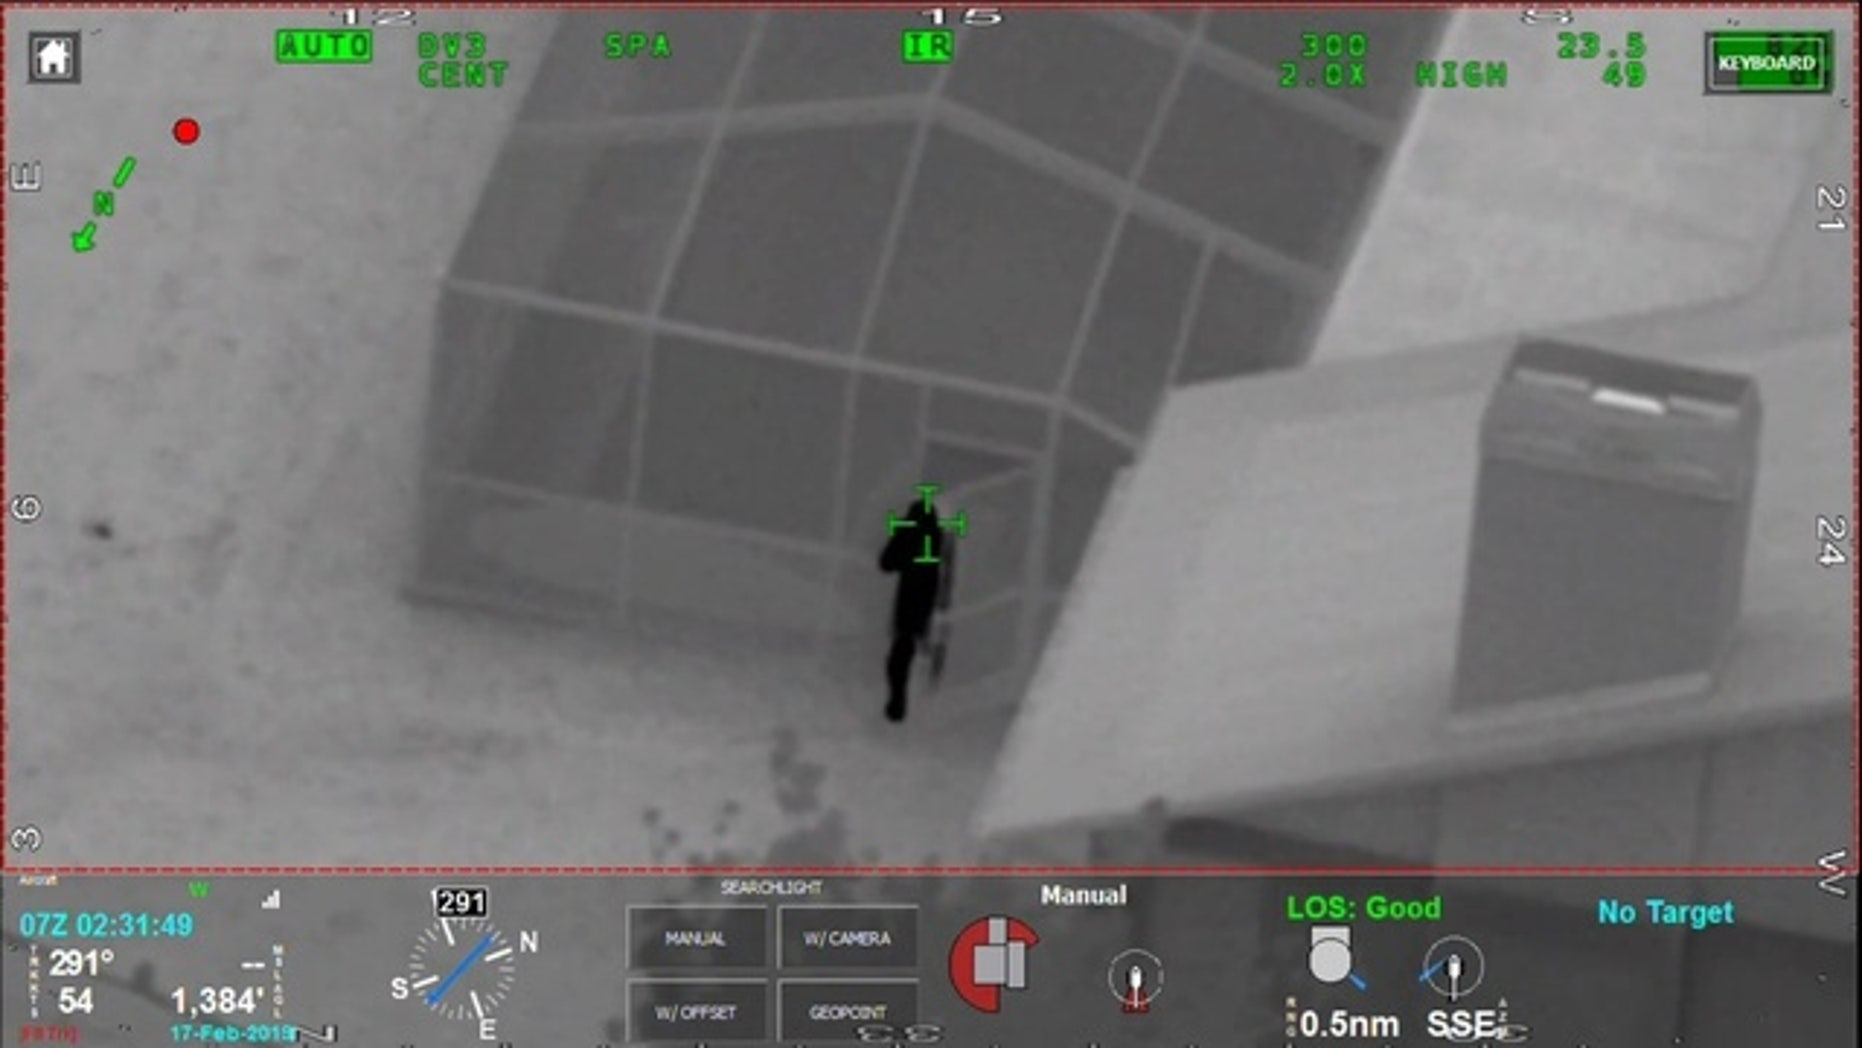 Authorities in Clearwater, Fla., said someone flashed a laser at a sheriff's helicopter on Sunday morning.